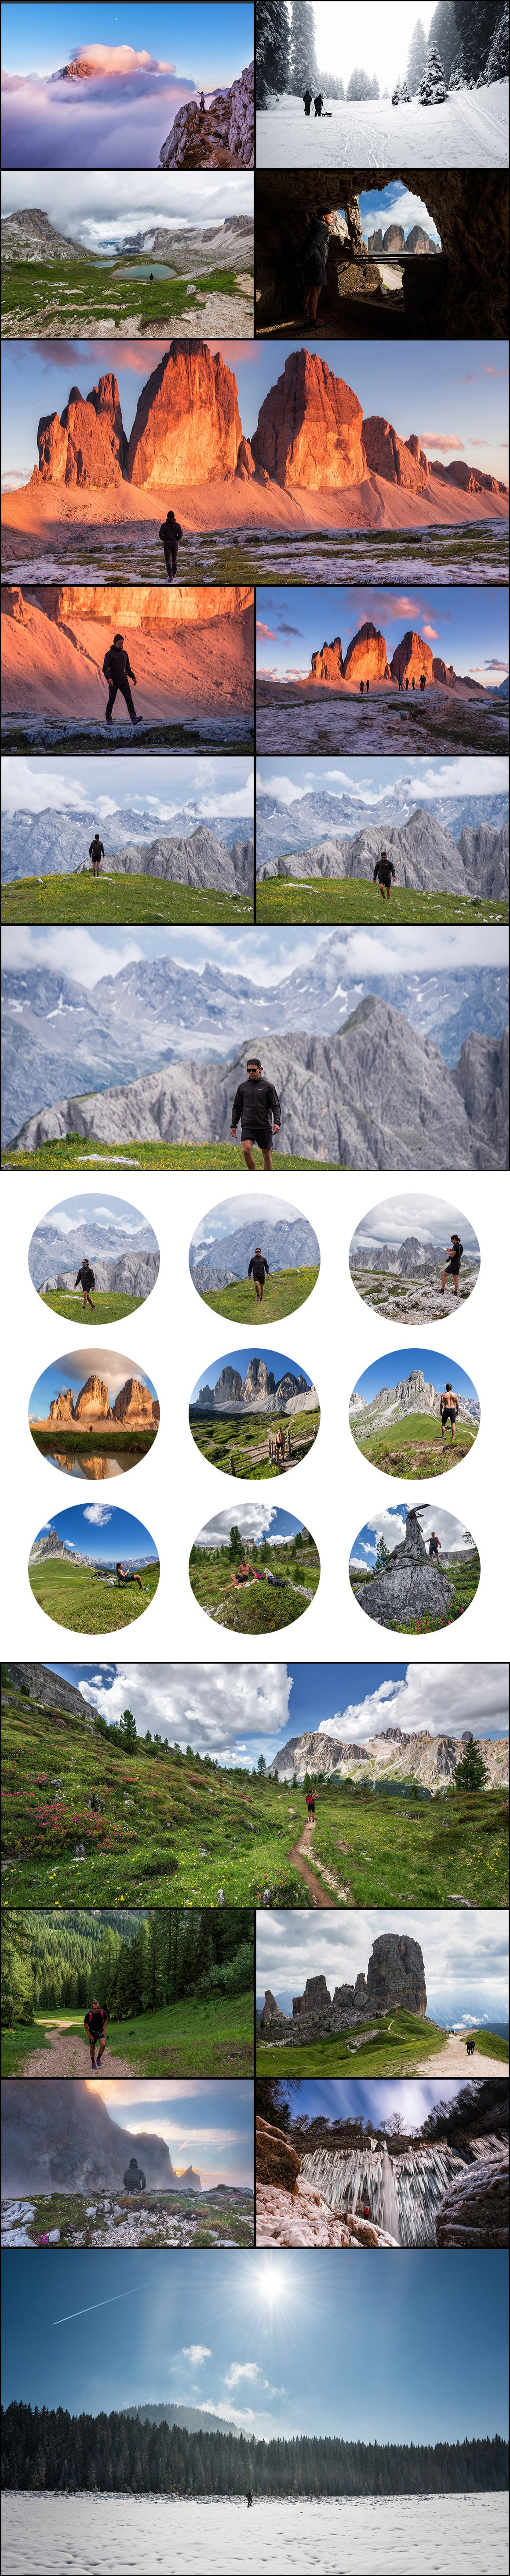 500+ Stock Images. Ultimate Photo Bundle  – $59 - PREVIEW people landscapes1